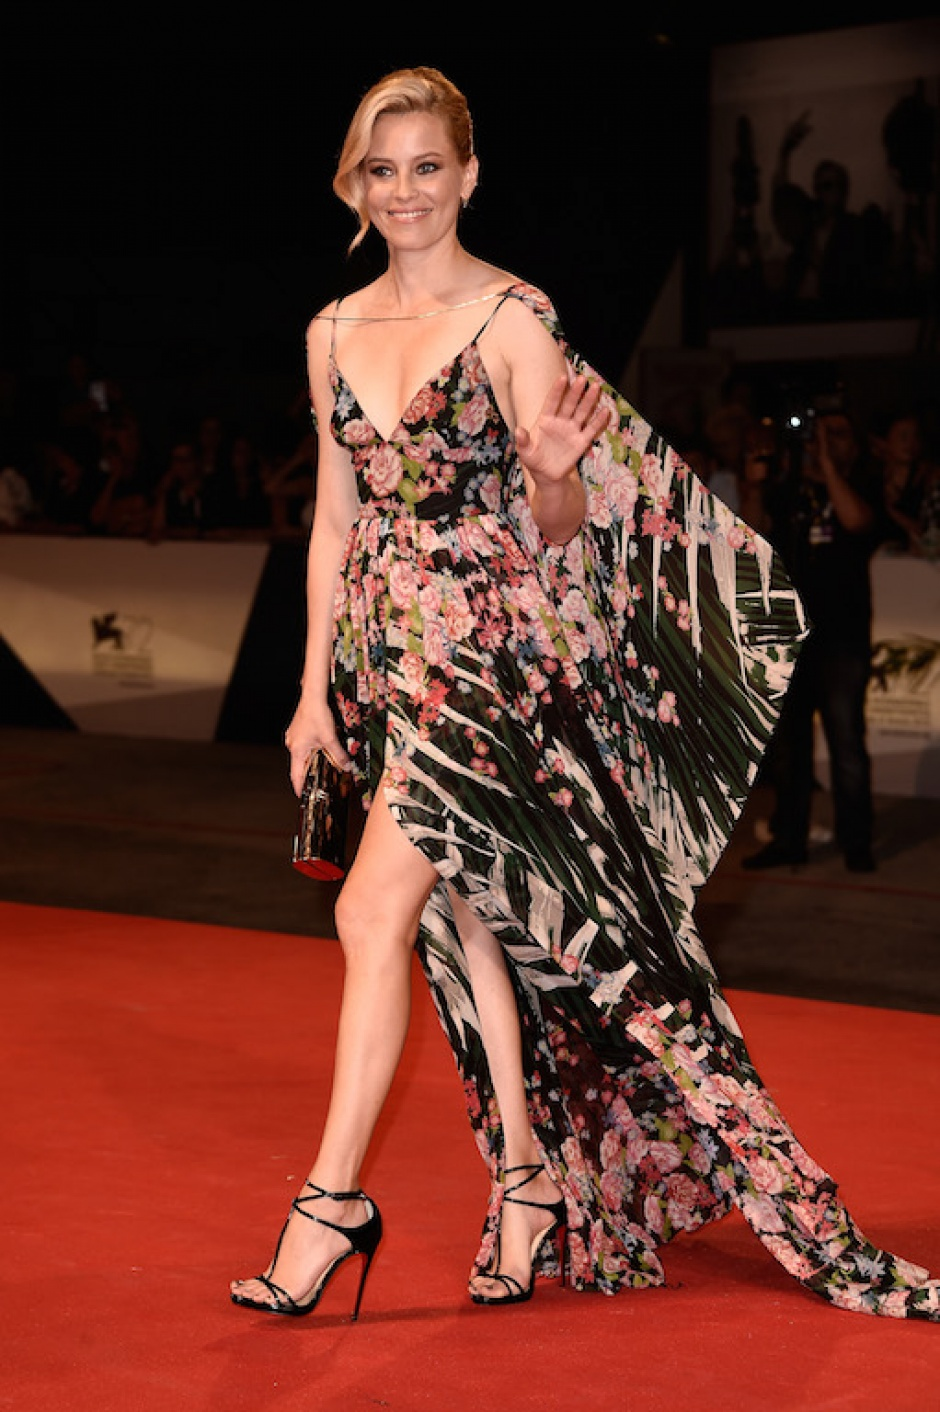 Elizabeth Banks wearing an Elie Saab gown at the 72nd Venice Film Festival